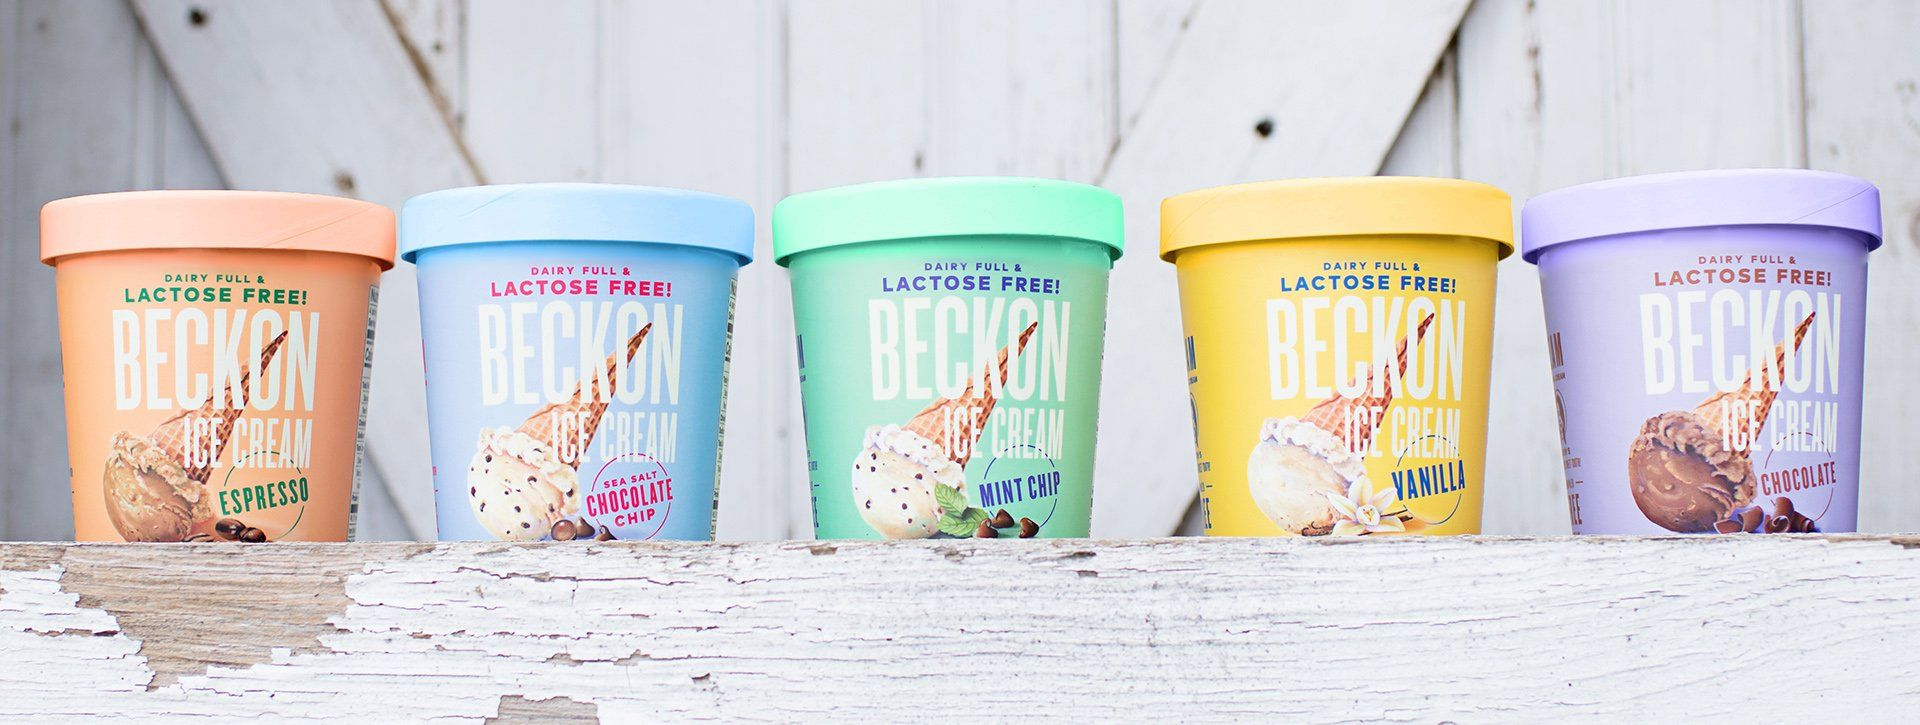 Home Beckon Ice Cream Ice Cream Packaging Fancy Food Food Shows